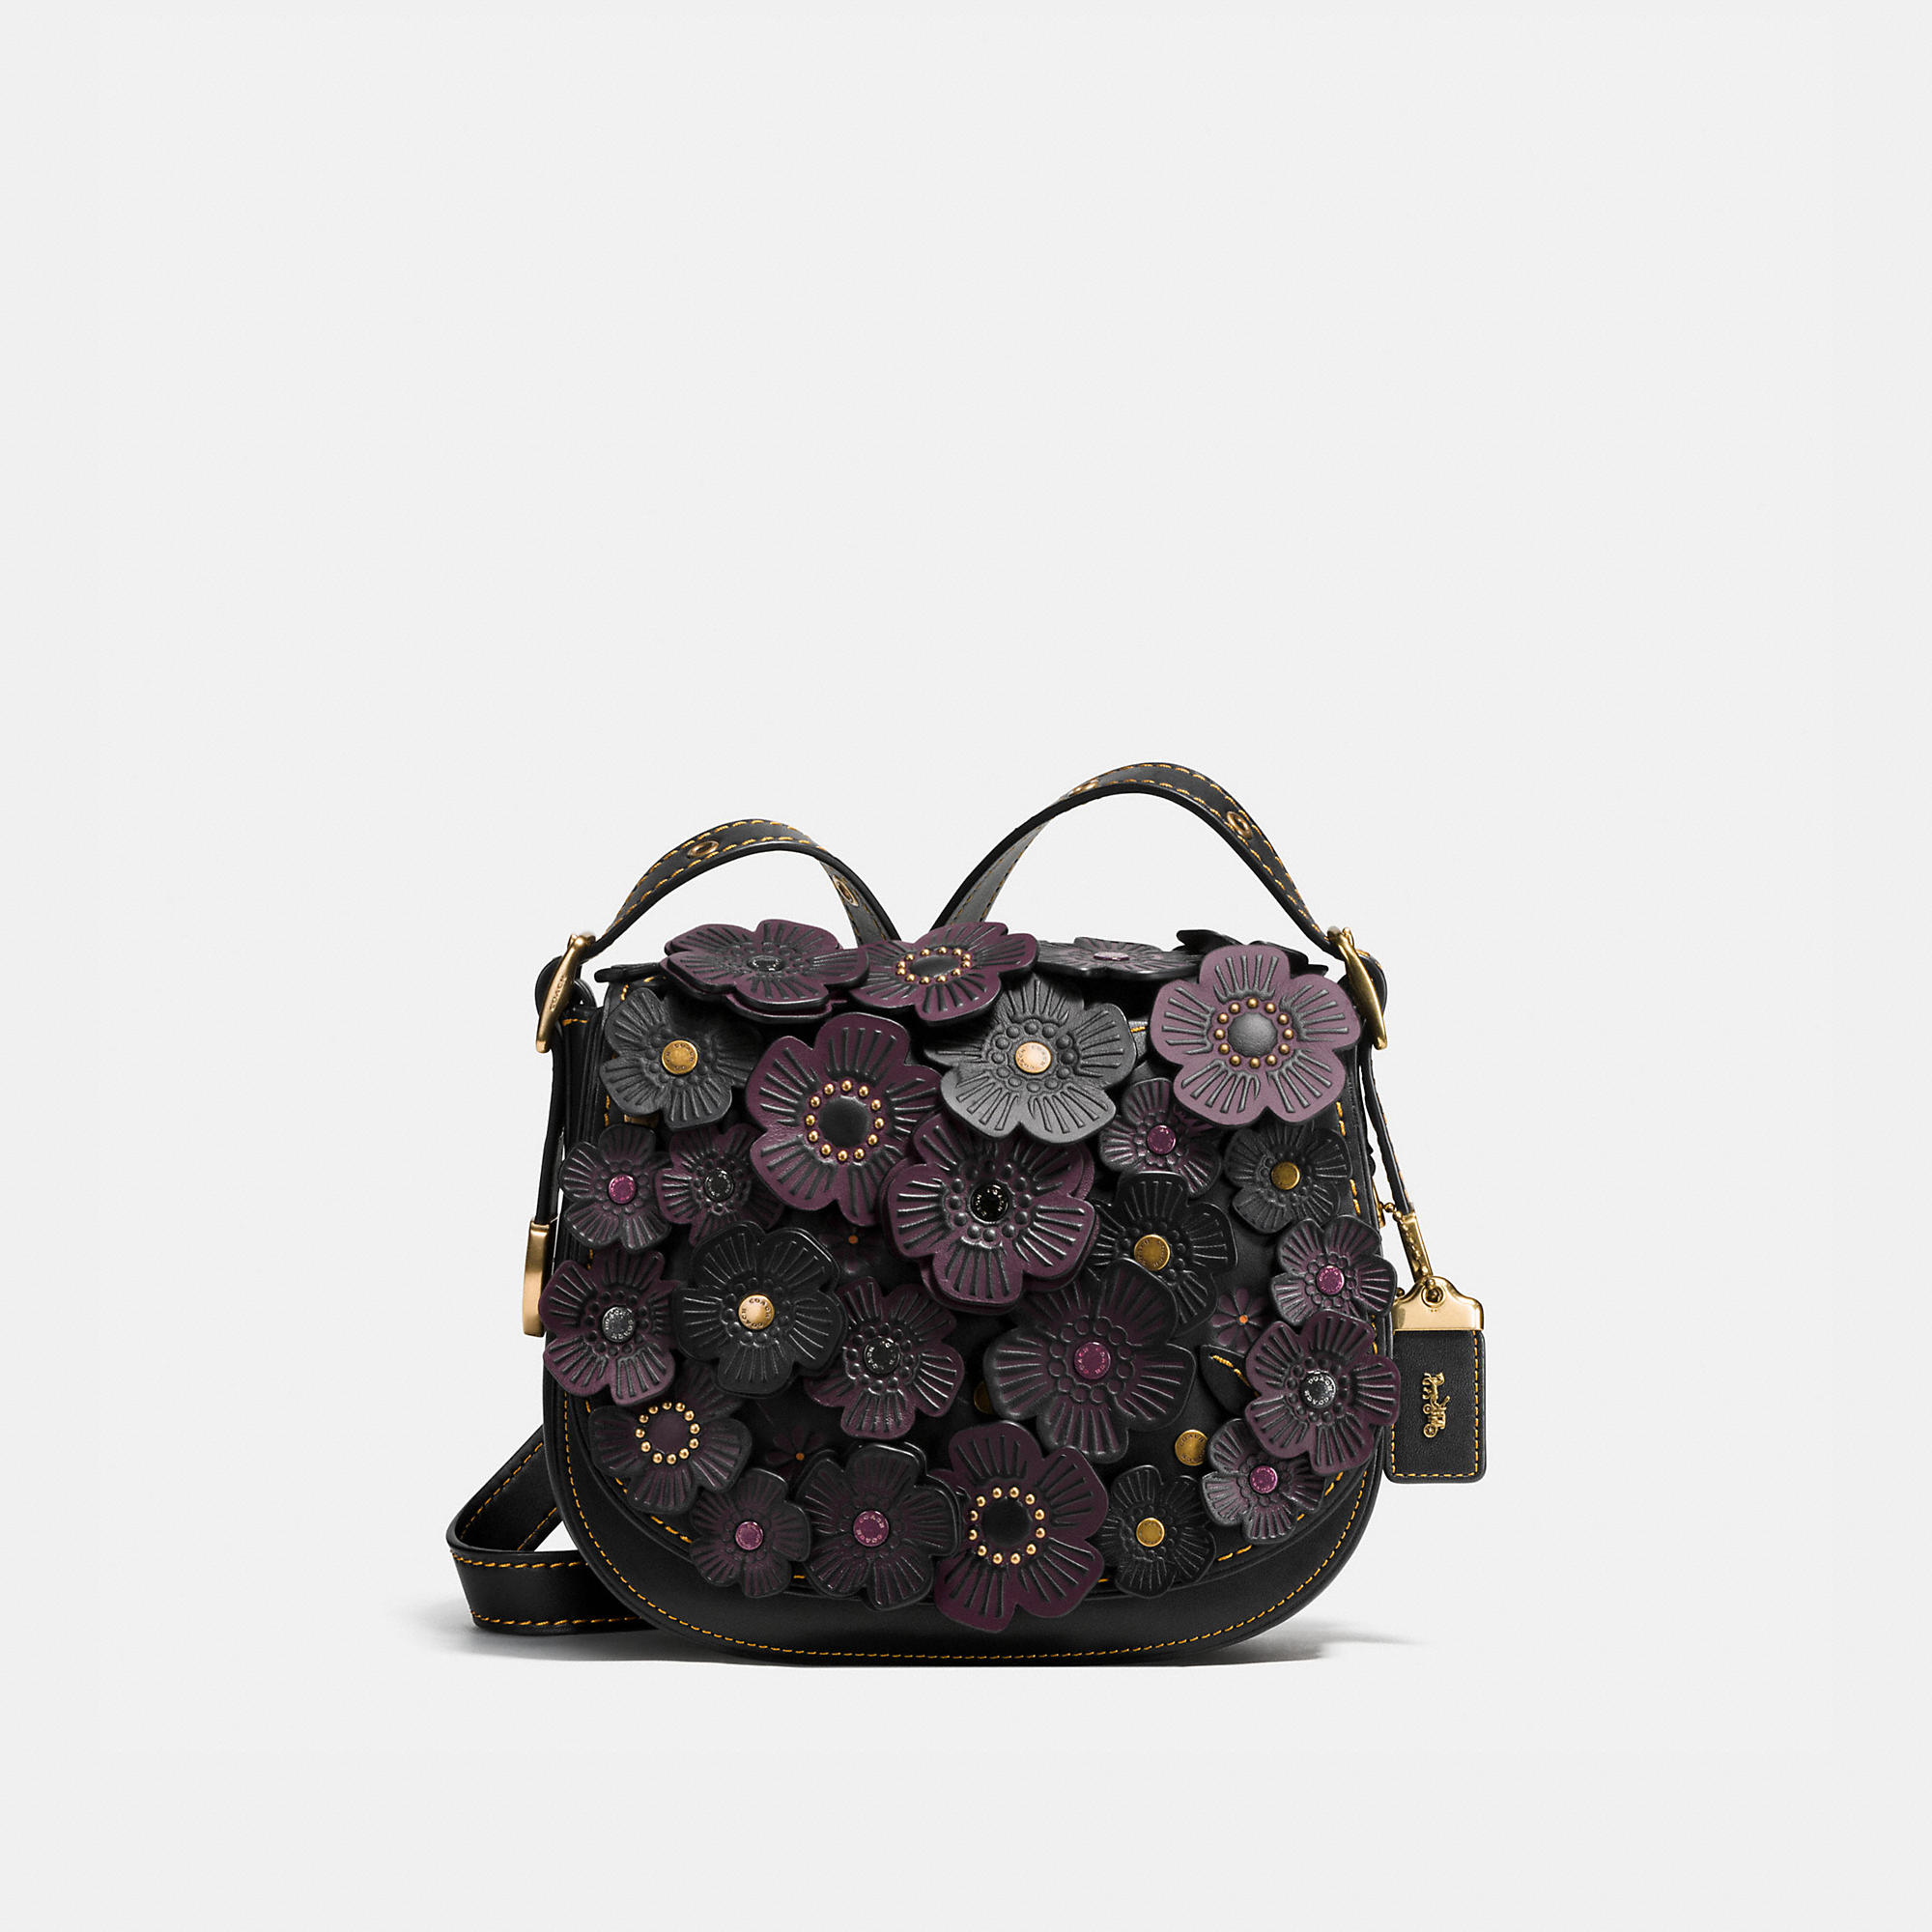 Coach 1941 Saddle 23 In Glovetanned Leather With Tea Rose